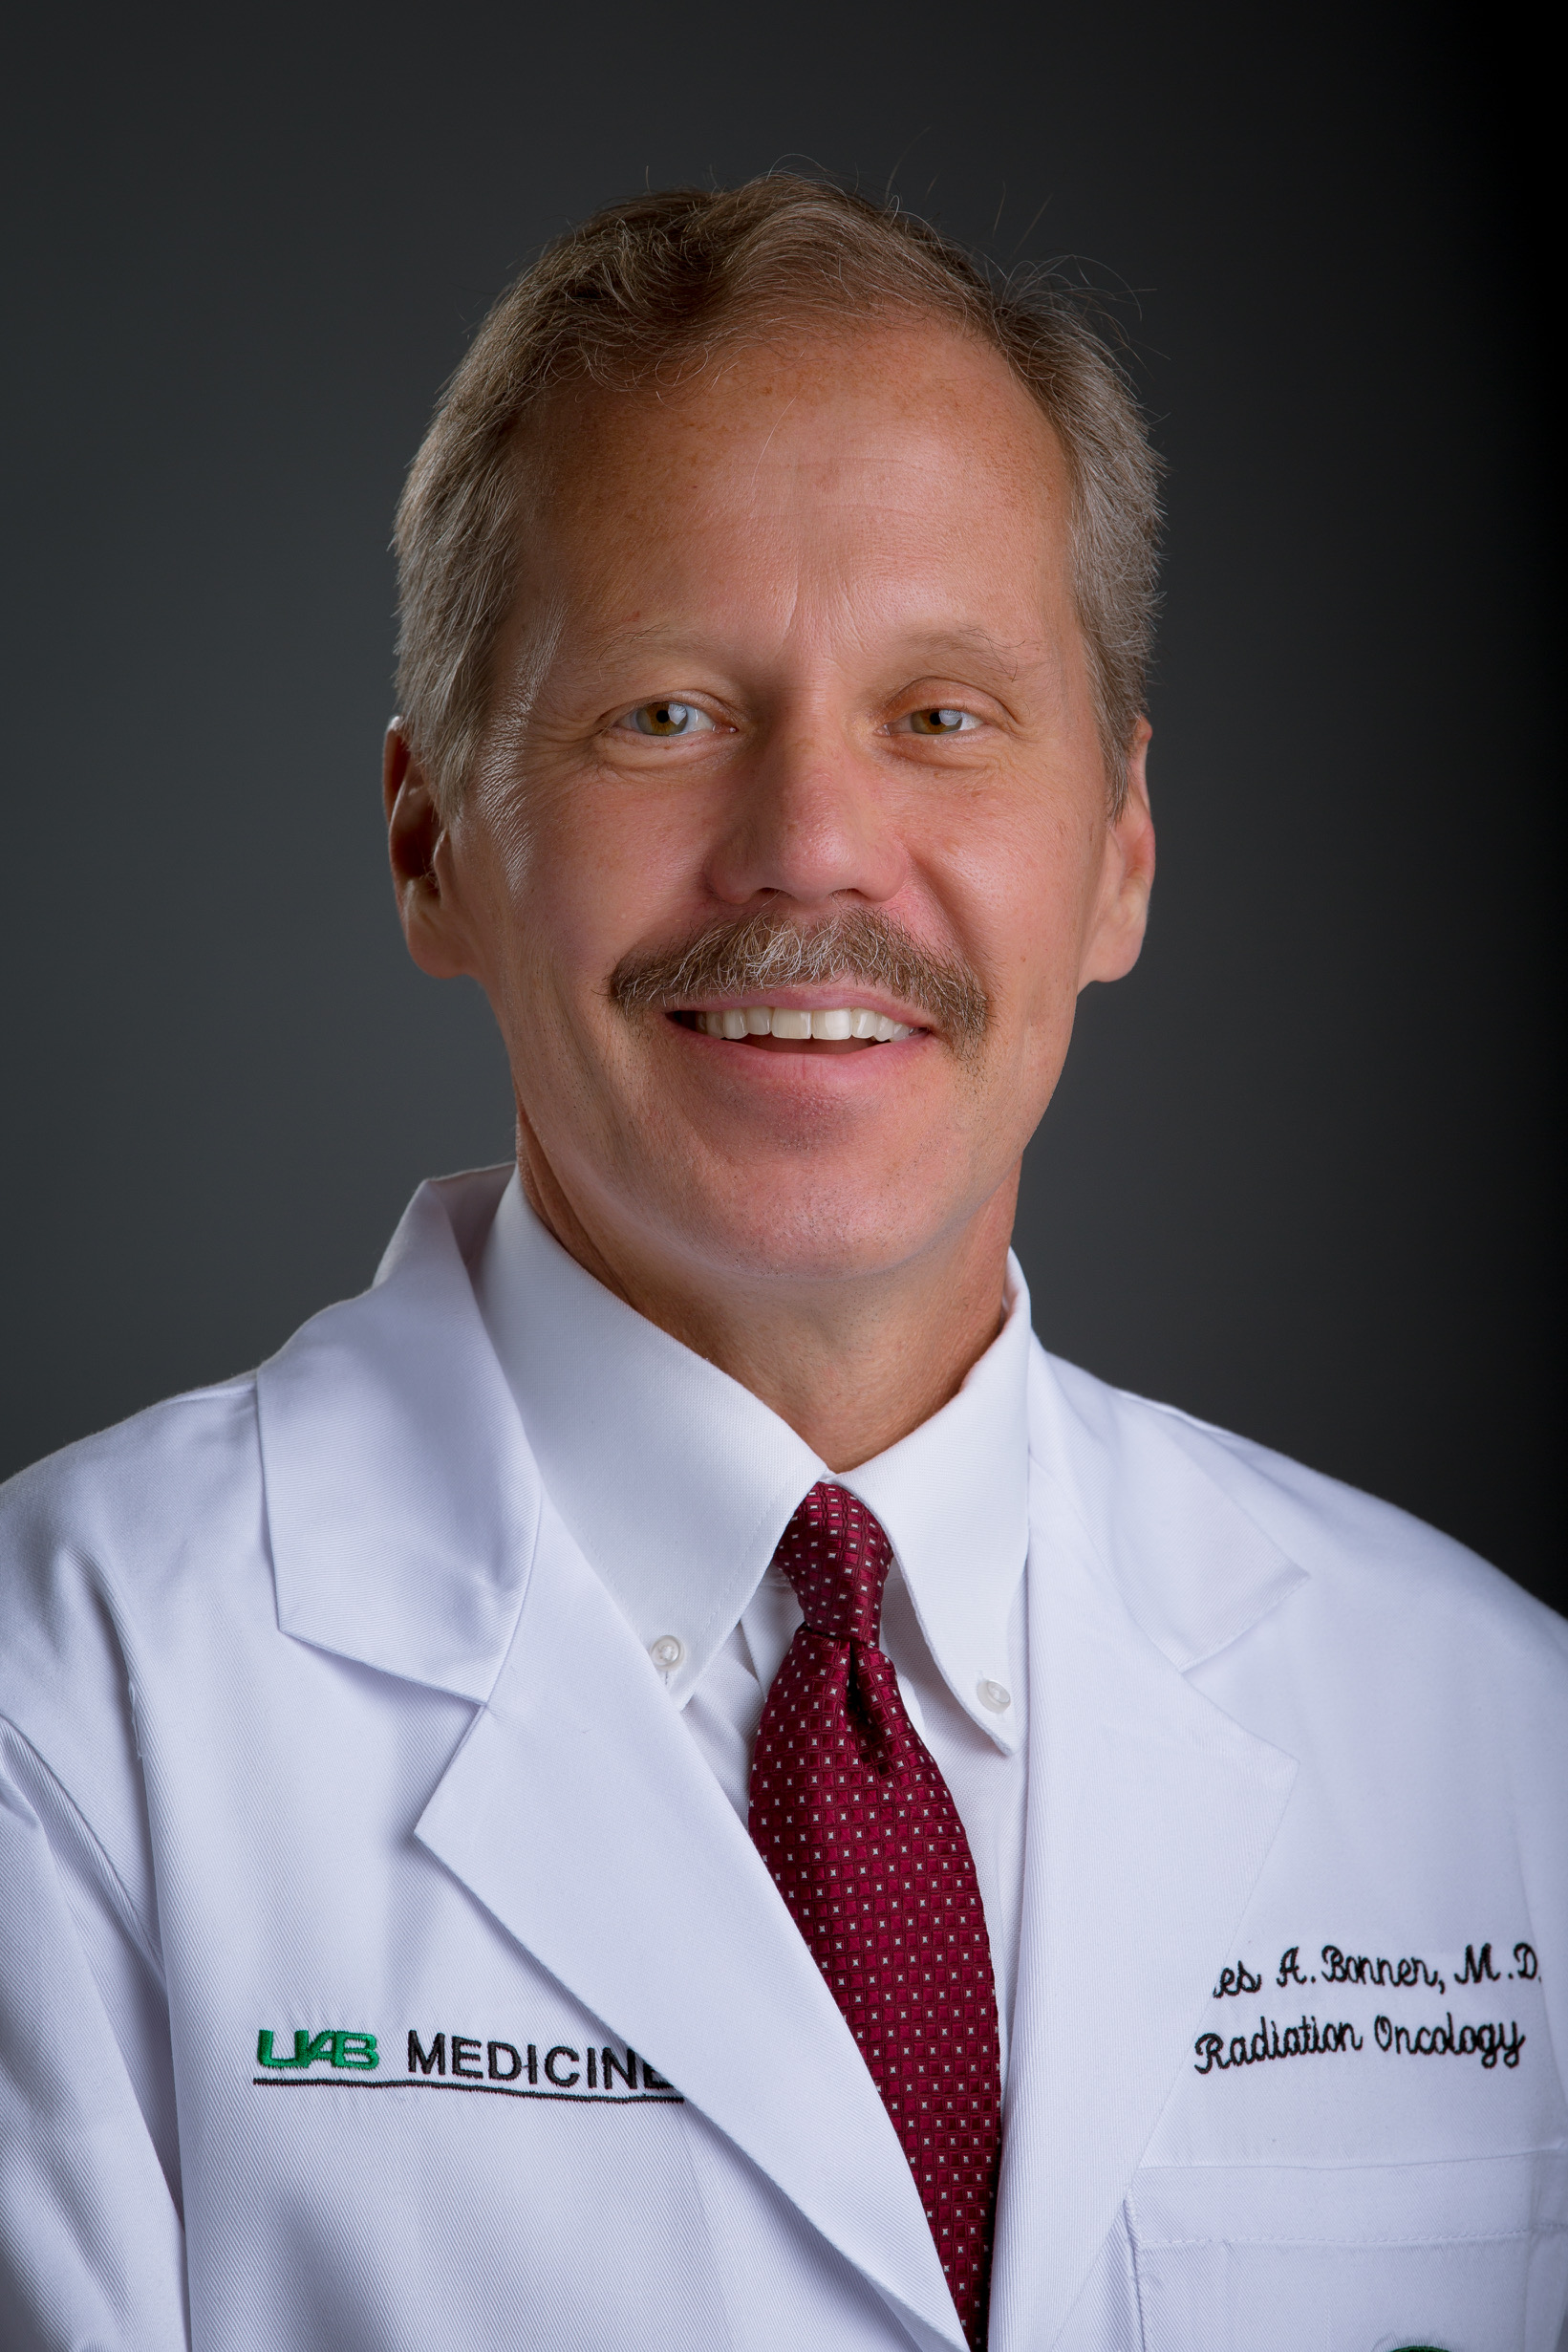 Bonner uab radiation oncology chairman